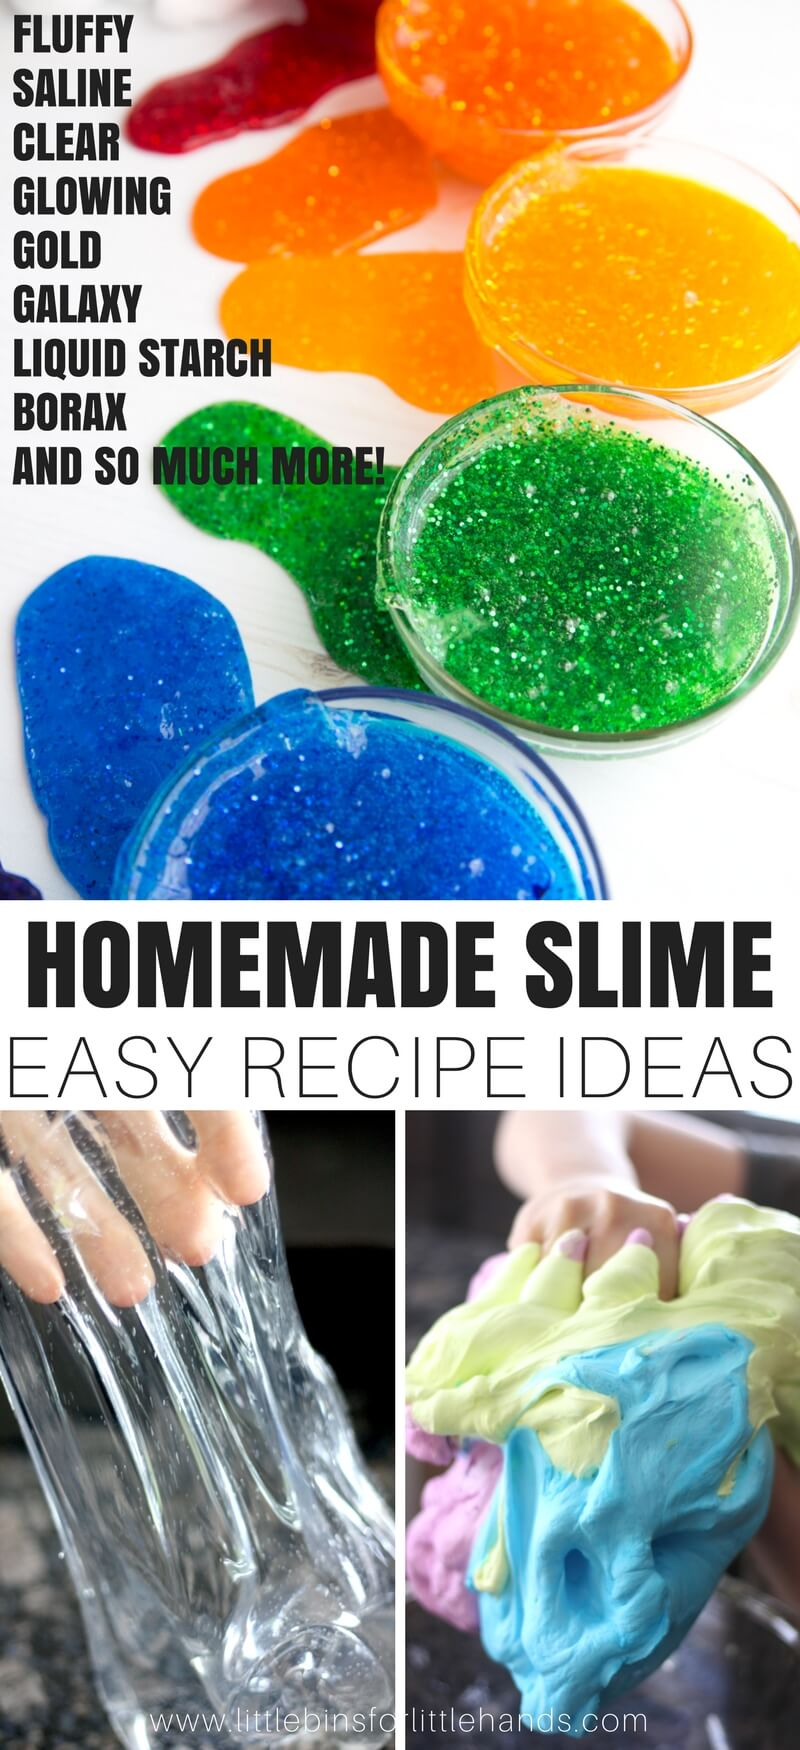 Homemade slime #slime #STEAM #science #nonnewtonianfluid